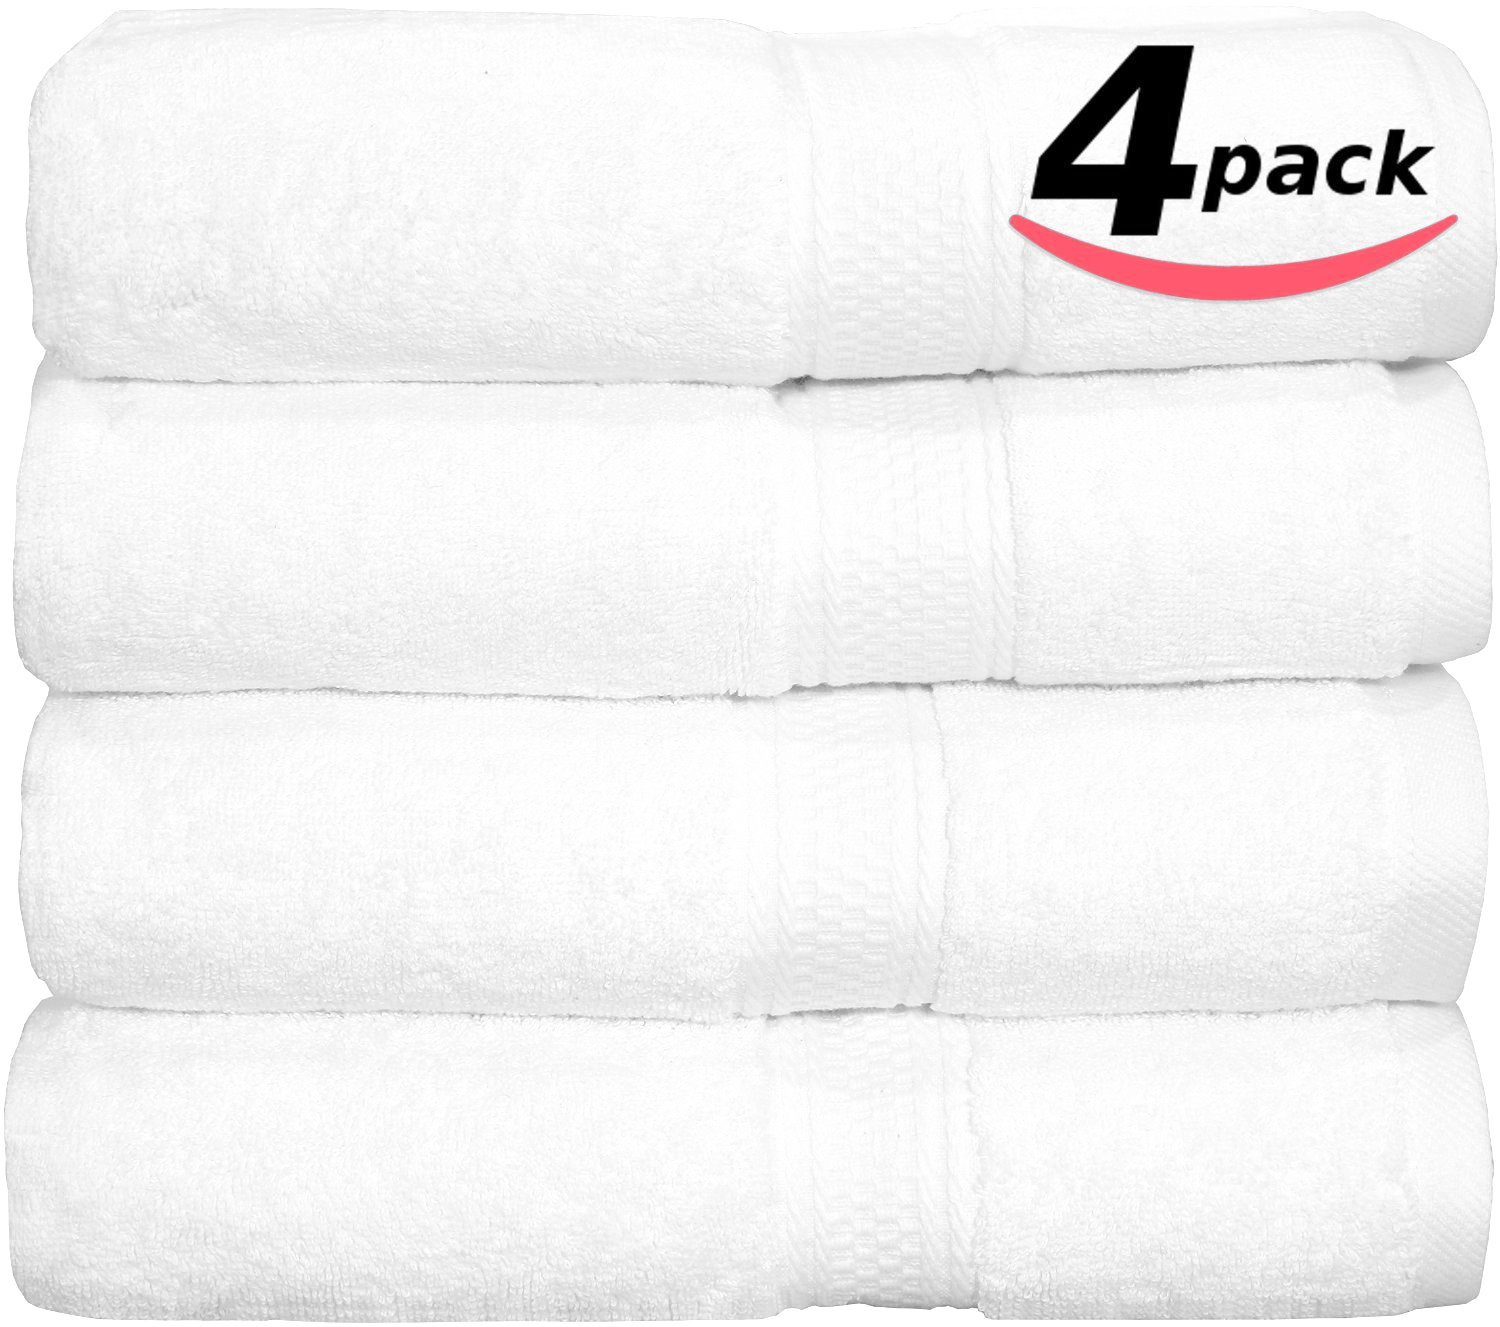 Premium Hotel & Spa Bath-Towels White – 4 Pack 100% Cotton Bath Towels, 27″ X 54″ Easy Care, 700 GSM Ringspun Cotton for Maximum Softness and Absorbency by Utopia Towels review